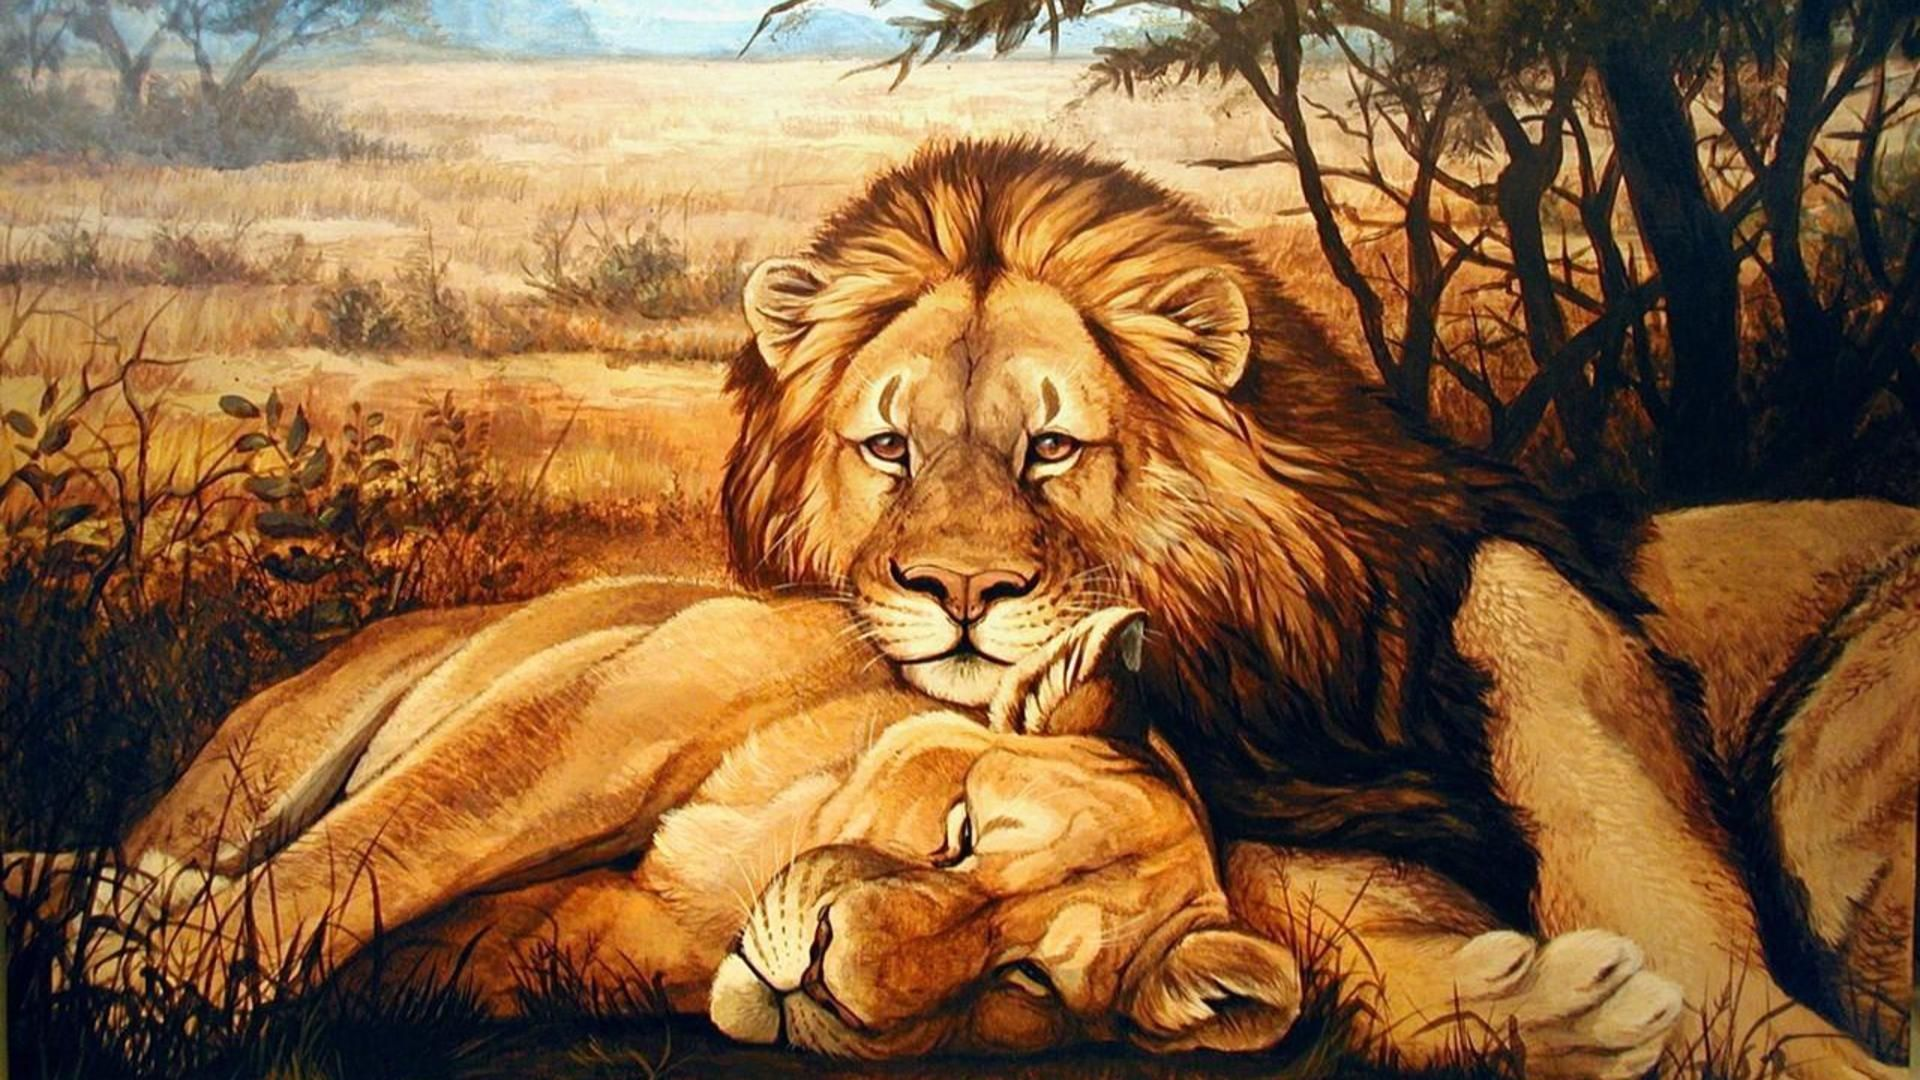 Lion Cheetah And Tiger Animals Big Cat Wallpap 5431 Wallpaper